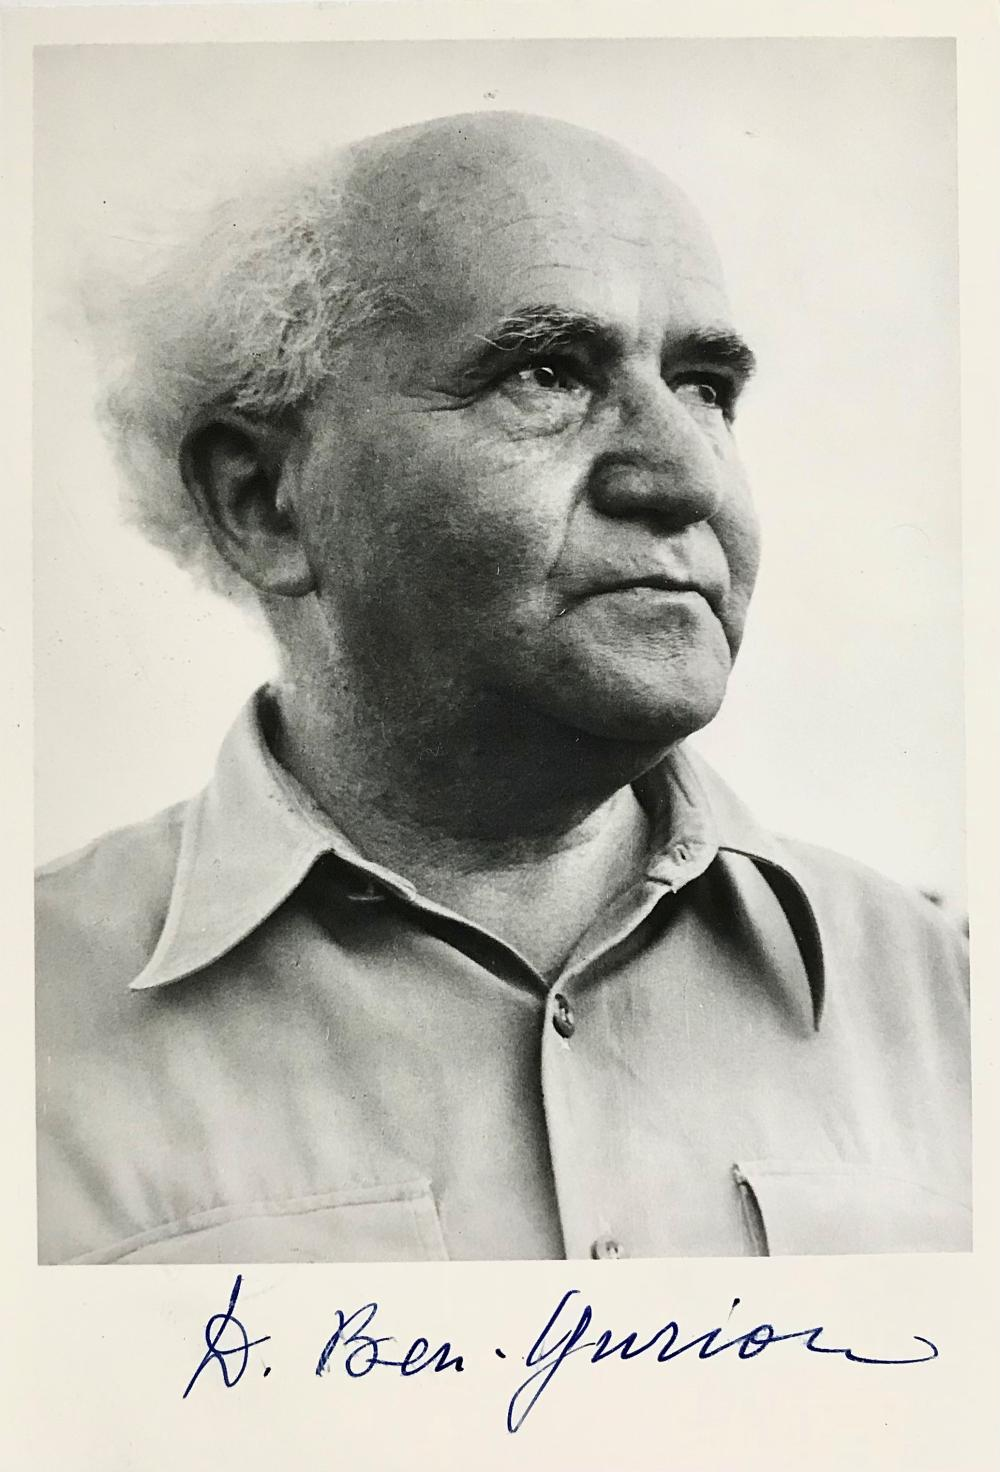 Mint Condition Signed Photograph of Ben-Gurion, Israel's First Prime Minister